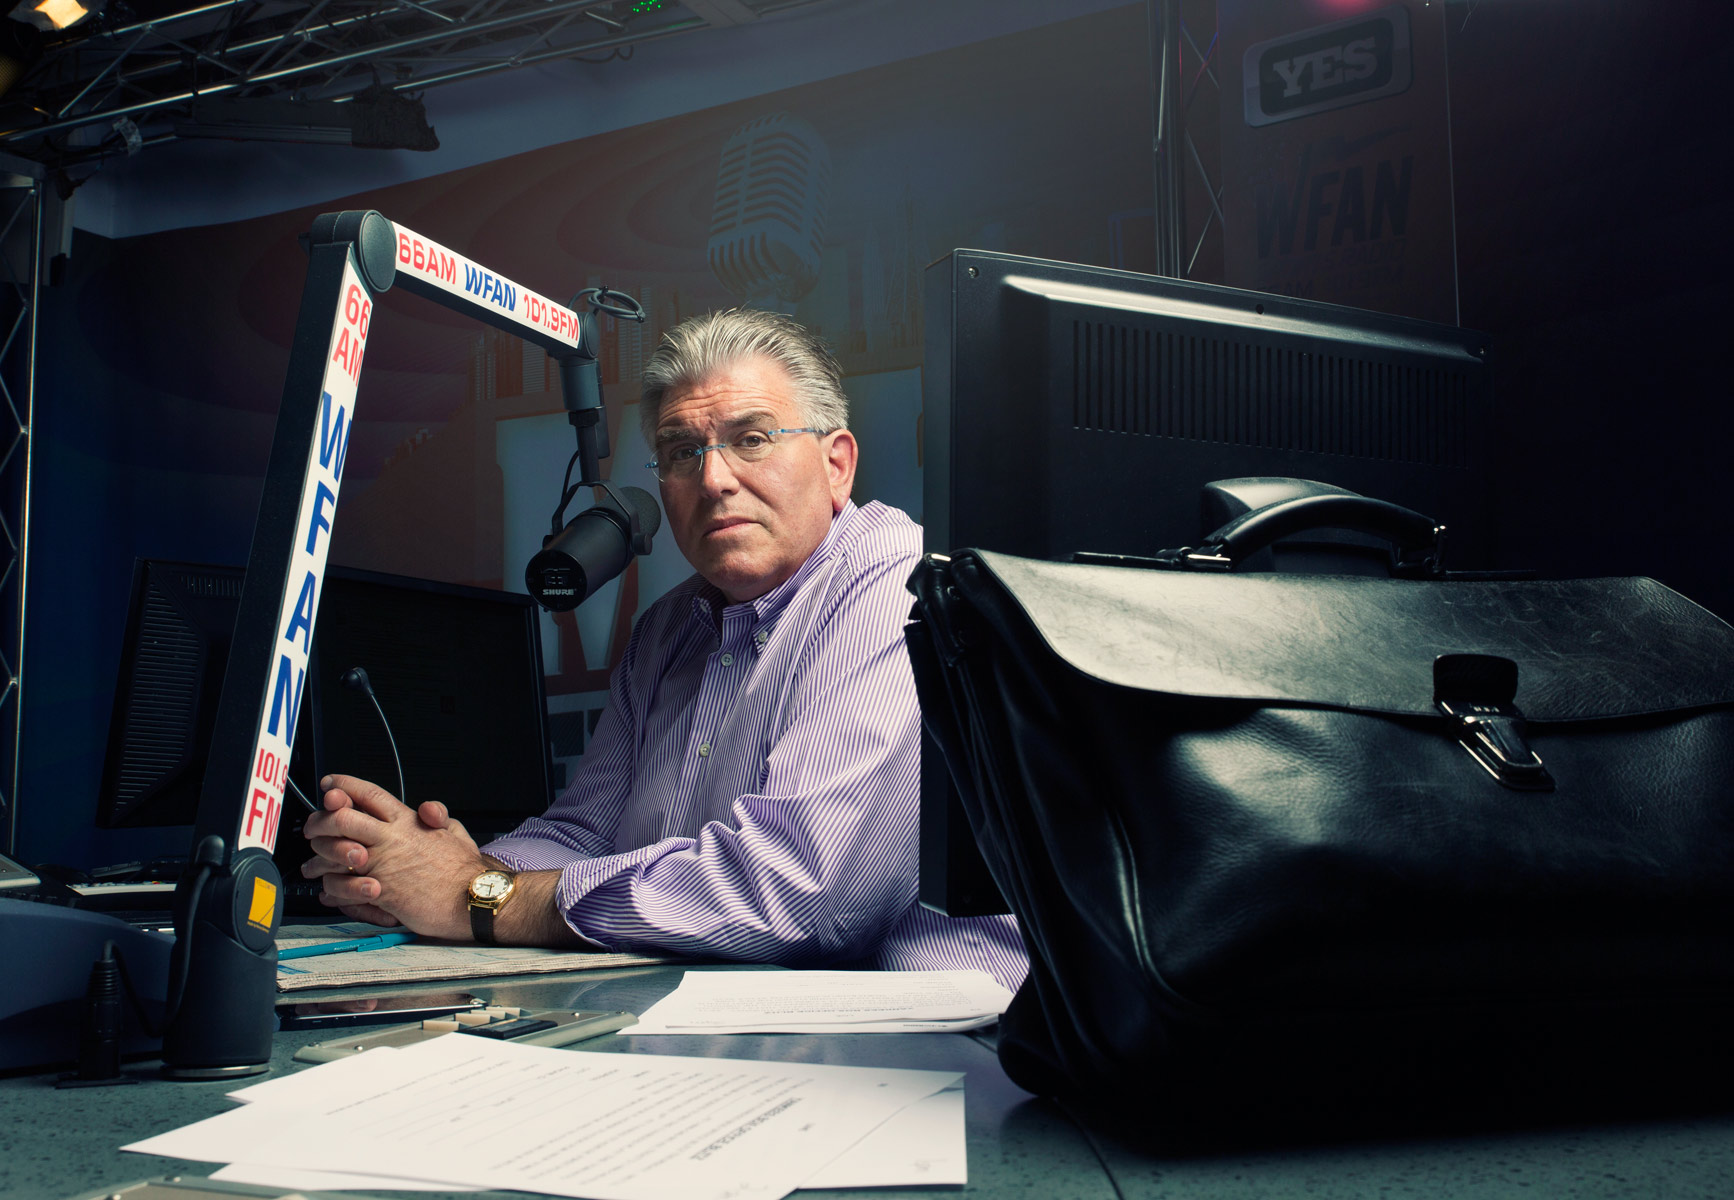 Mike Francesa by Matt Furman - www.furmanfoto.com